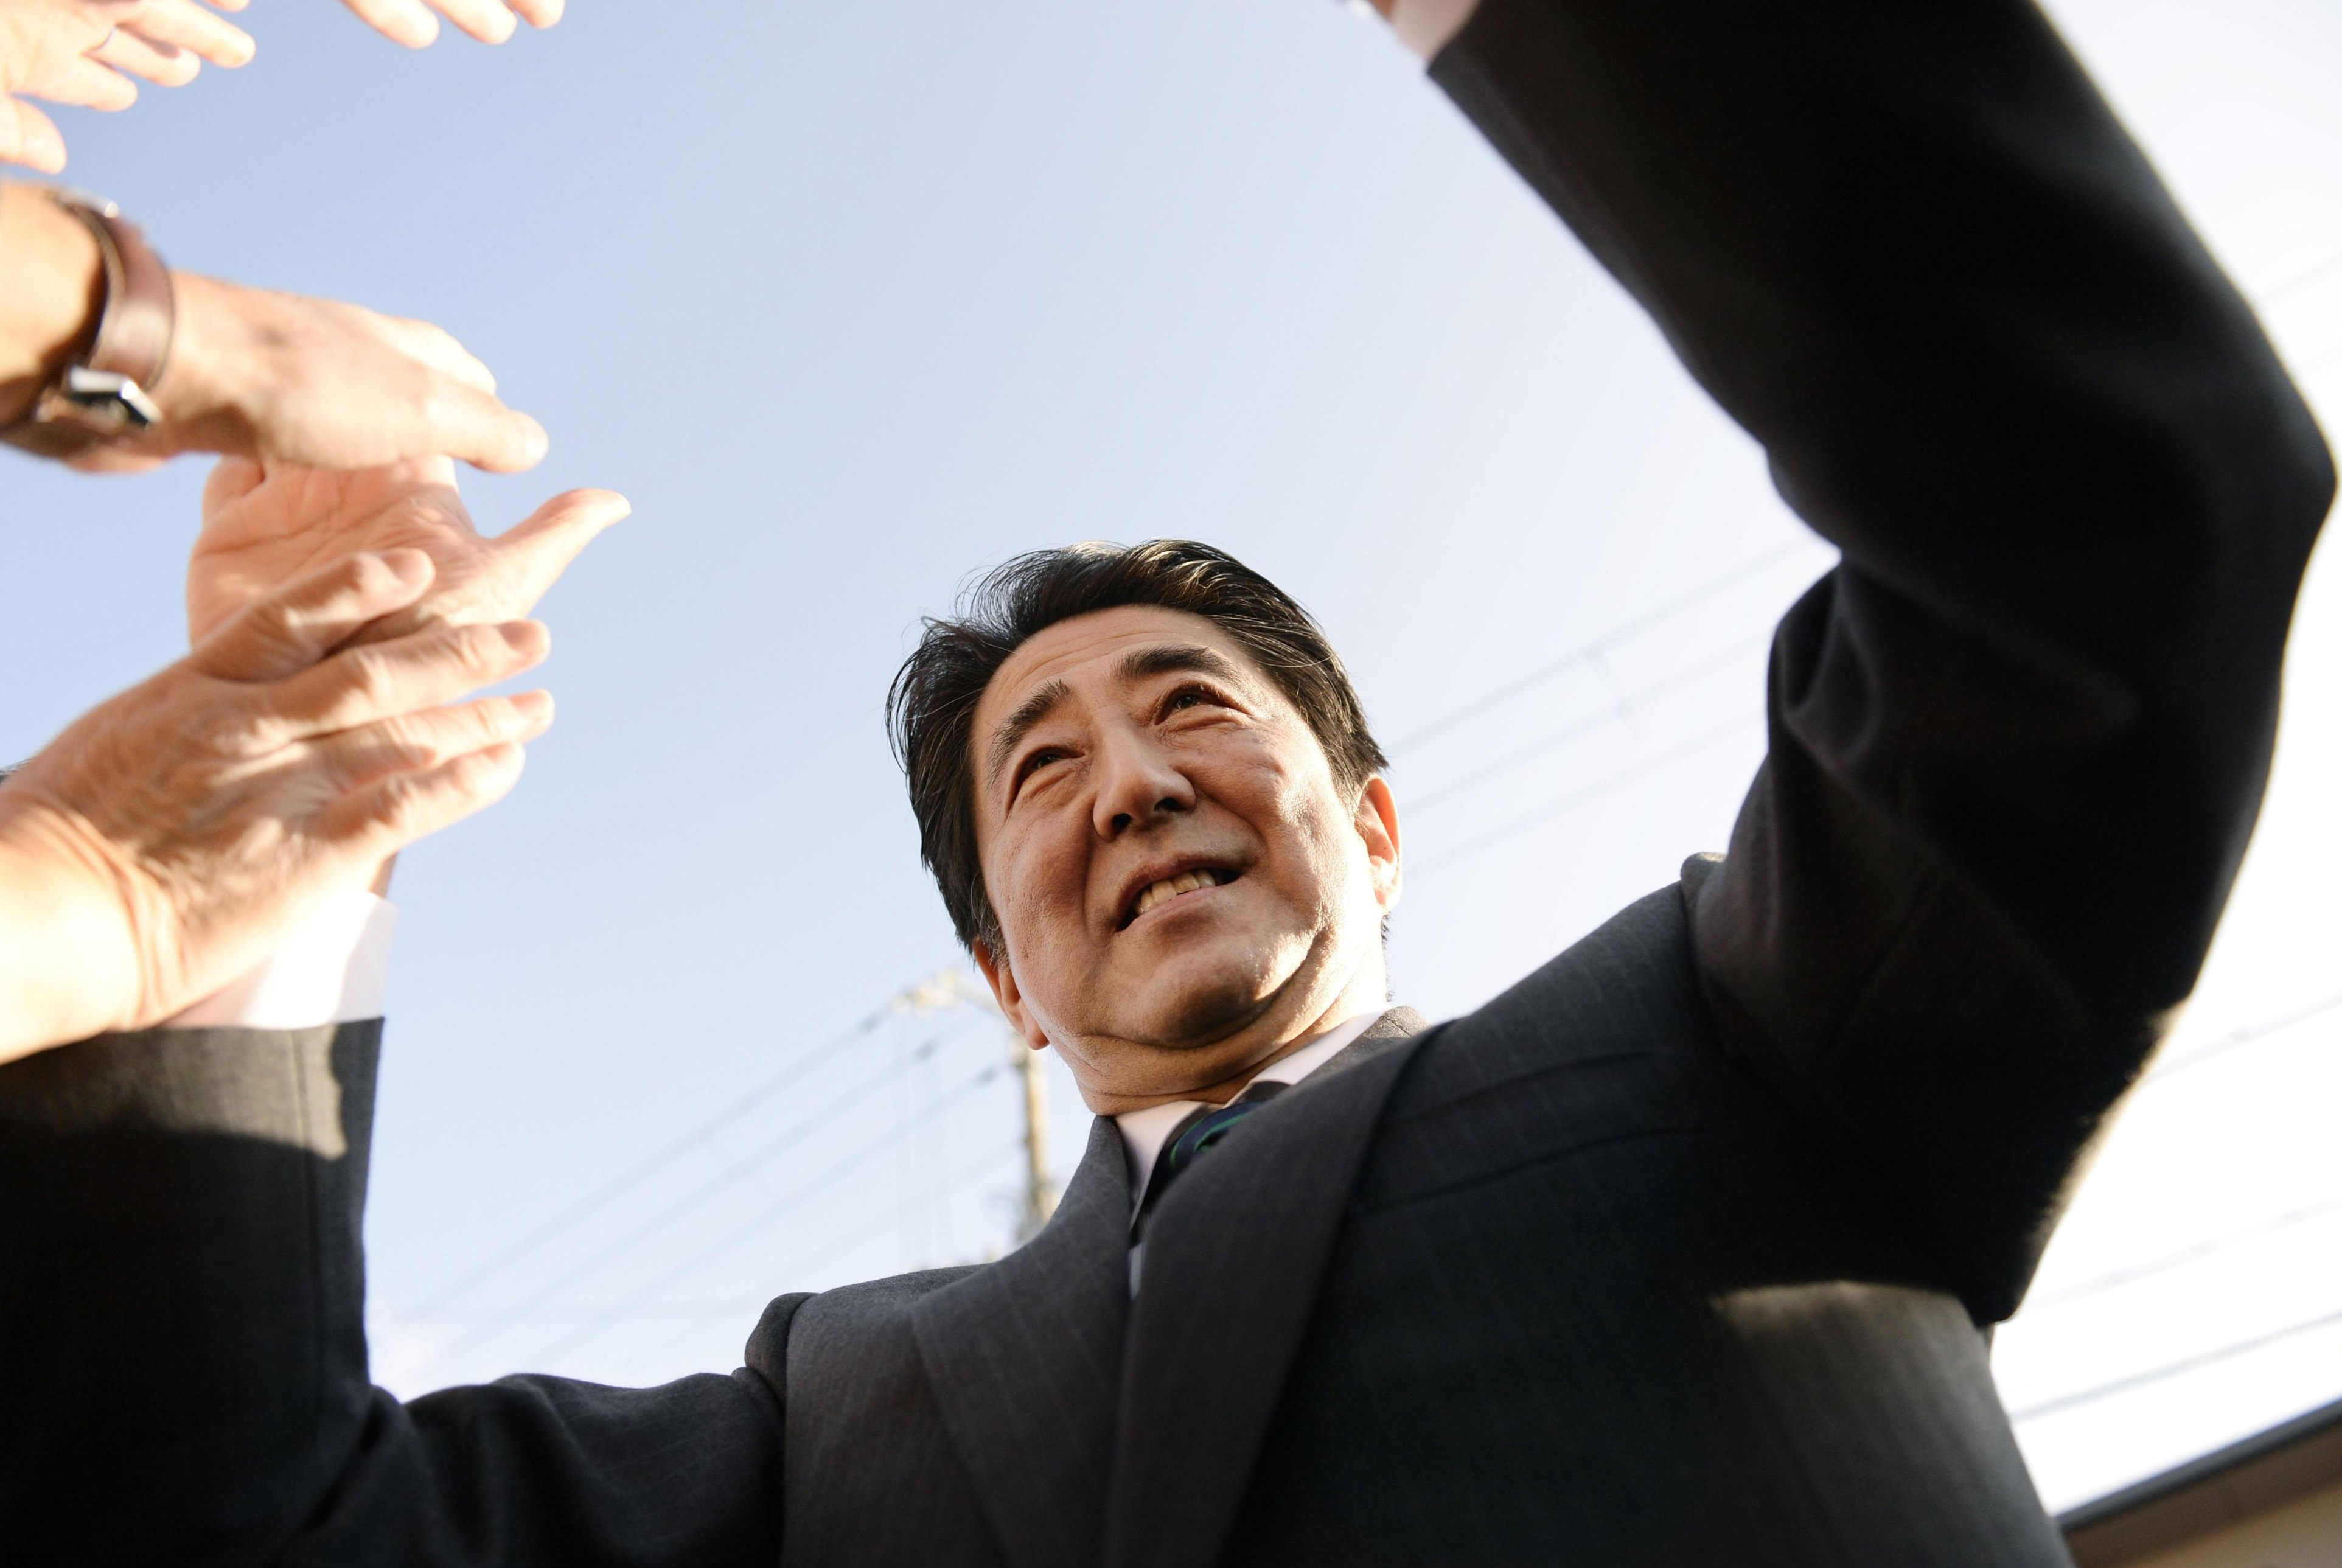 Prime Minister Shinzo Abe high-fives supporters in Kyoto on Dec. 10 while campaigning for the Lower House election. | KYODO